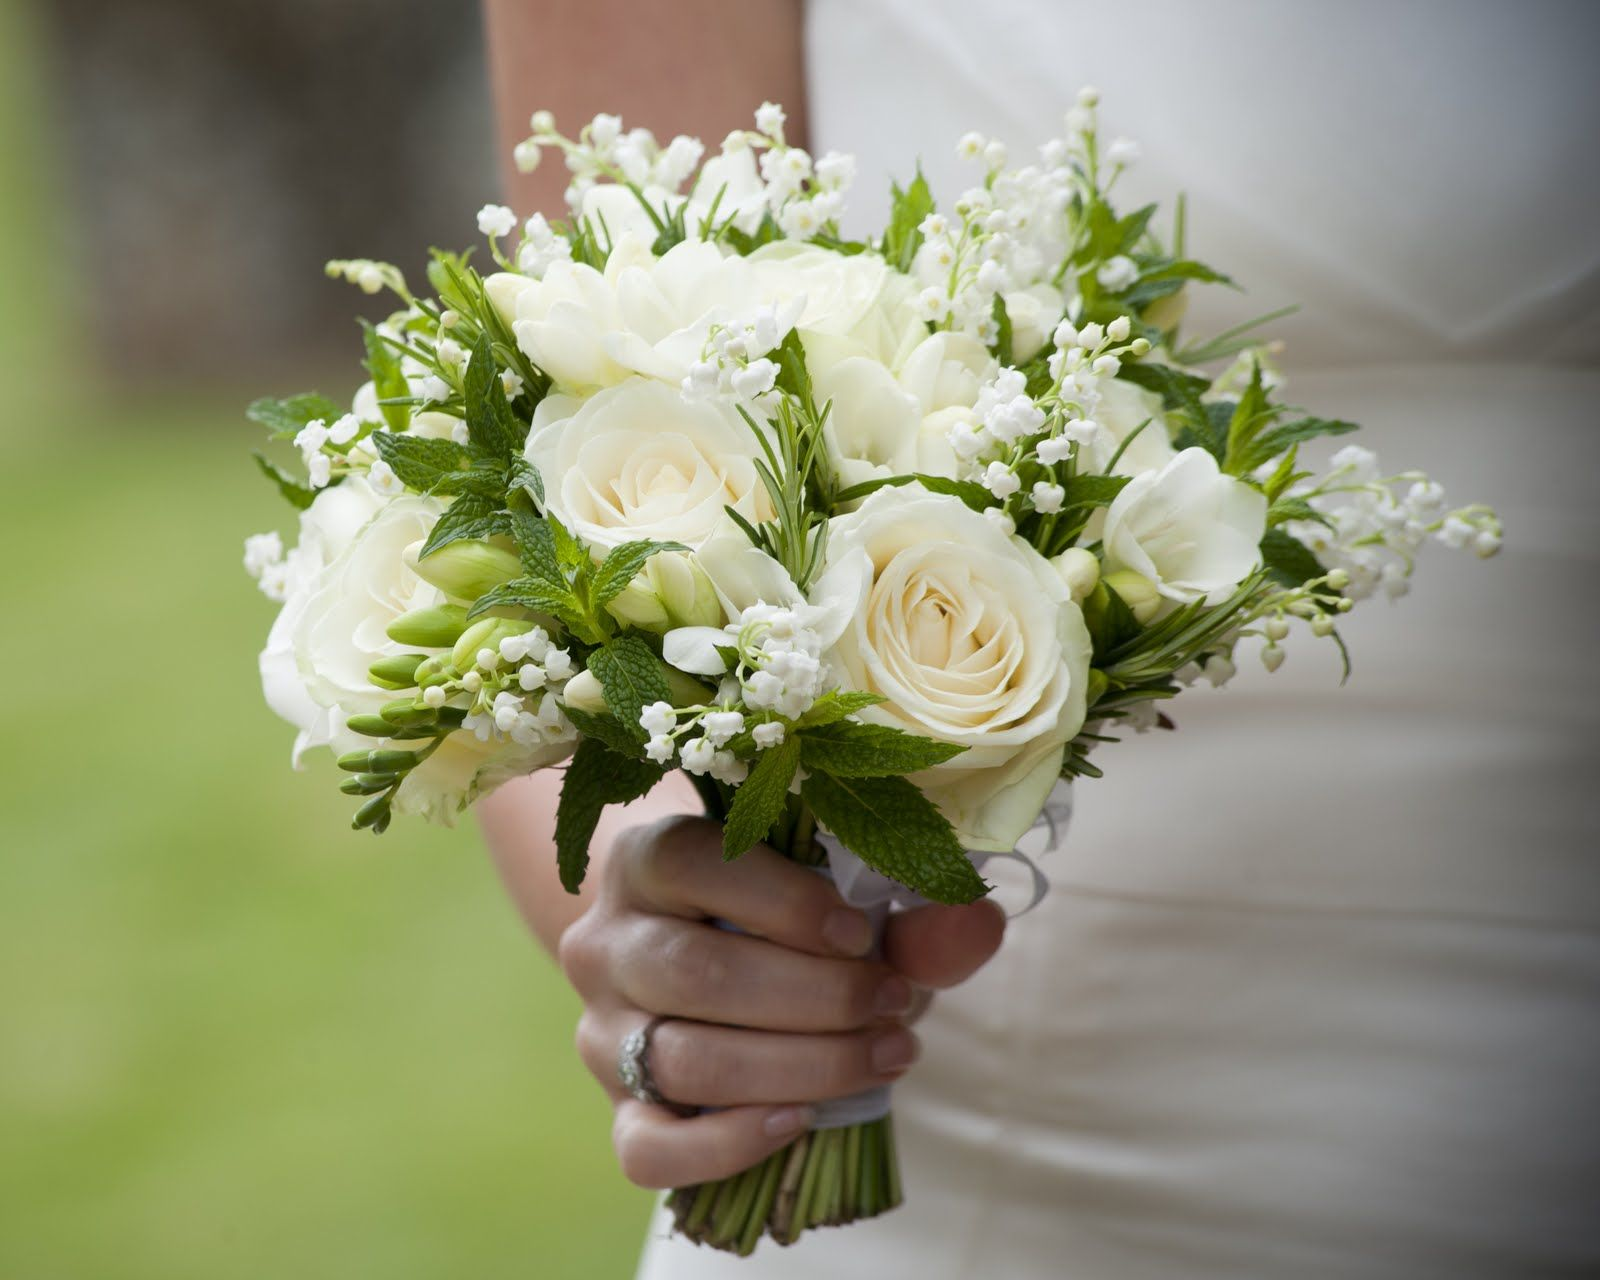 Cheap Bridal Bouquets Great Online Wedding Flowers Online Get Cheap Wedding Endearing In 2020 Cheap Wedding Flowers Wedding Flower Guide Budget Wedding Flowers